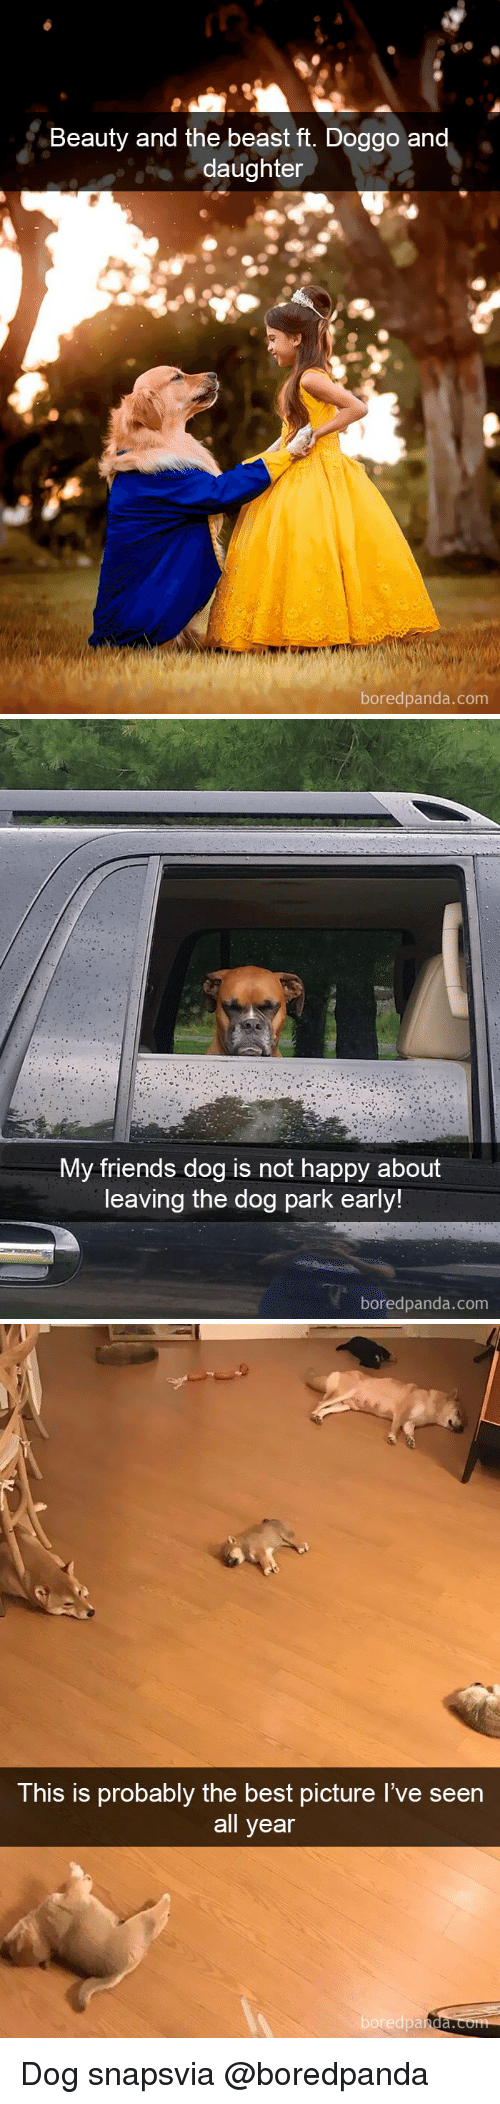 Friends, Beauty and the Beast, and Best: Beauty and the beast ft. Doggo an  daughter  boredpanda.com   My friends dog is not happy about  leaving the dog park early!  boredpanda.com   This is probably the best picture I've seen  all year  boredpa  nda. Dog snapsvia @boredpanda